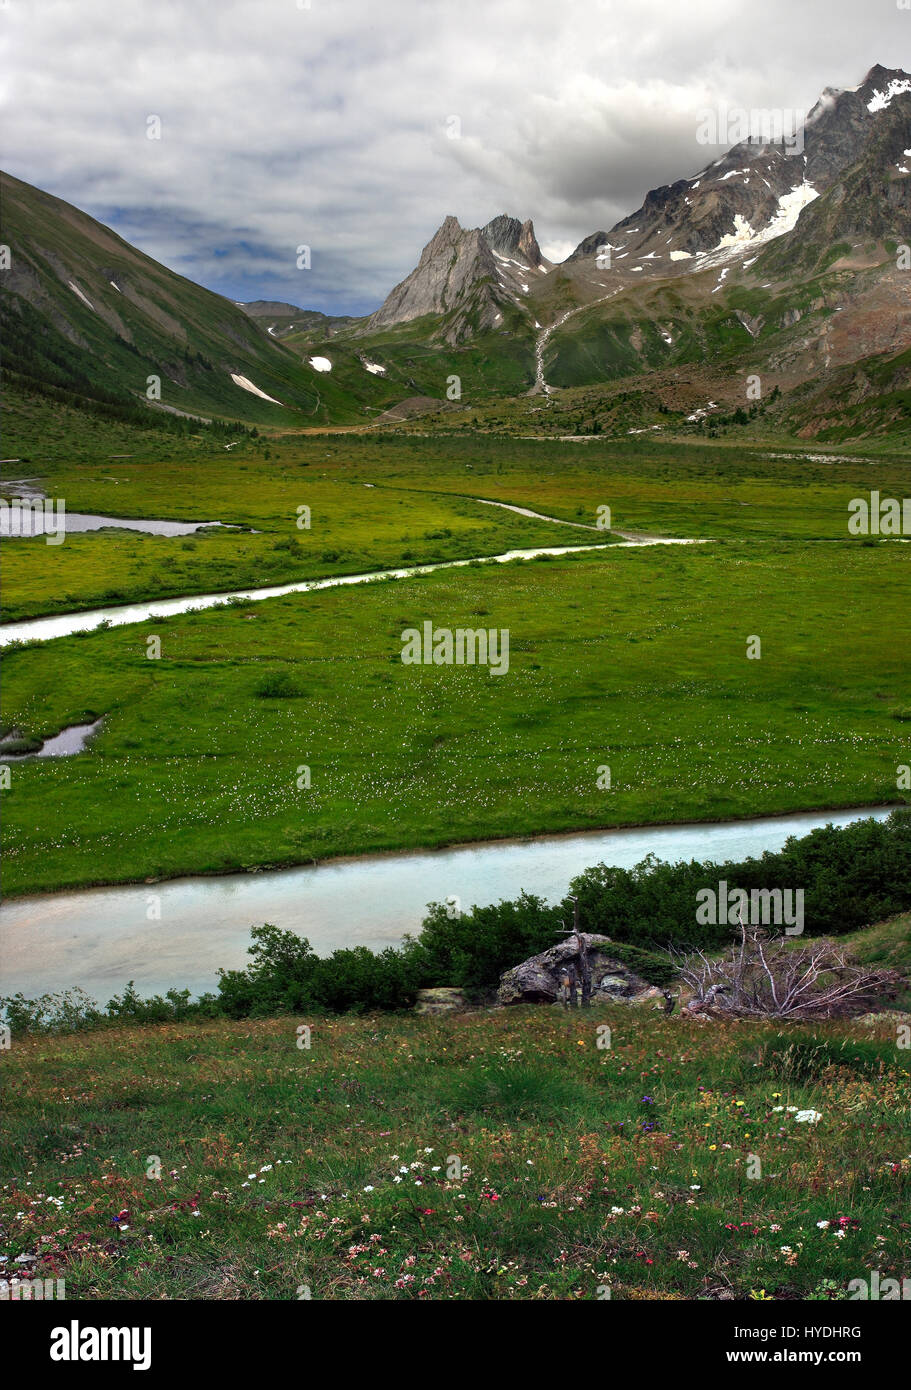 A comprehensive view of the Combal Lake, a high altitude plain lying at the feet of the massif known as Pyramides - Stock Image